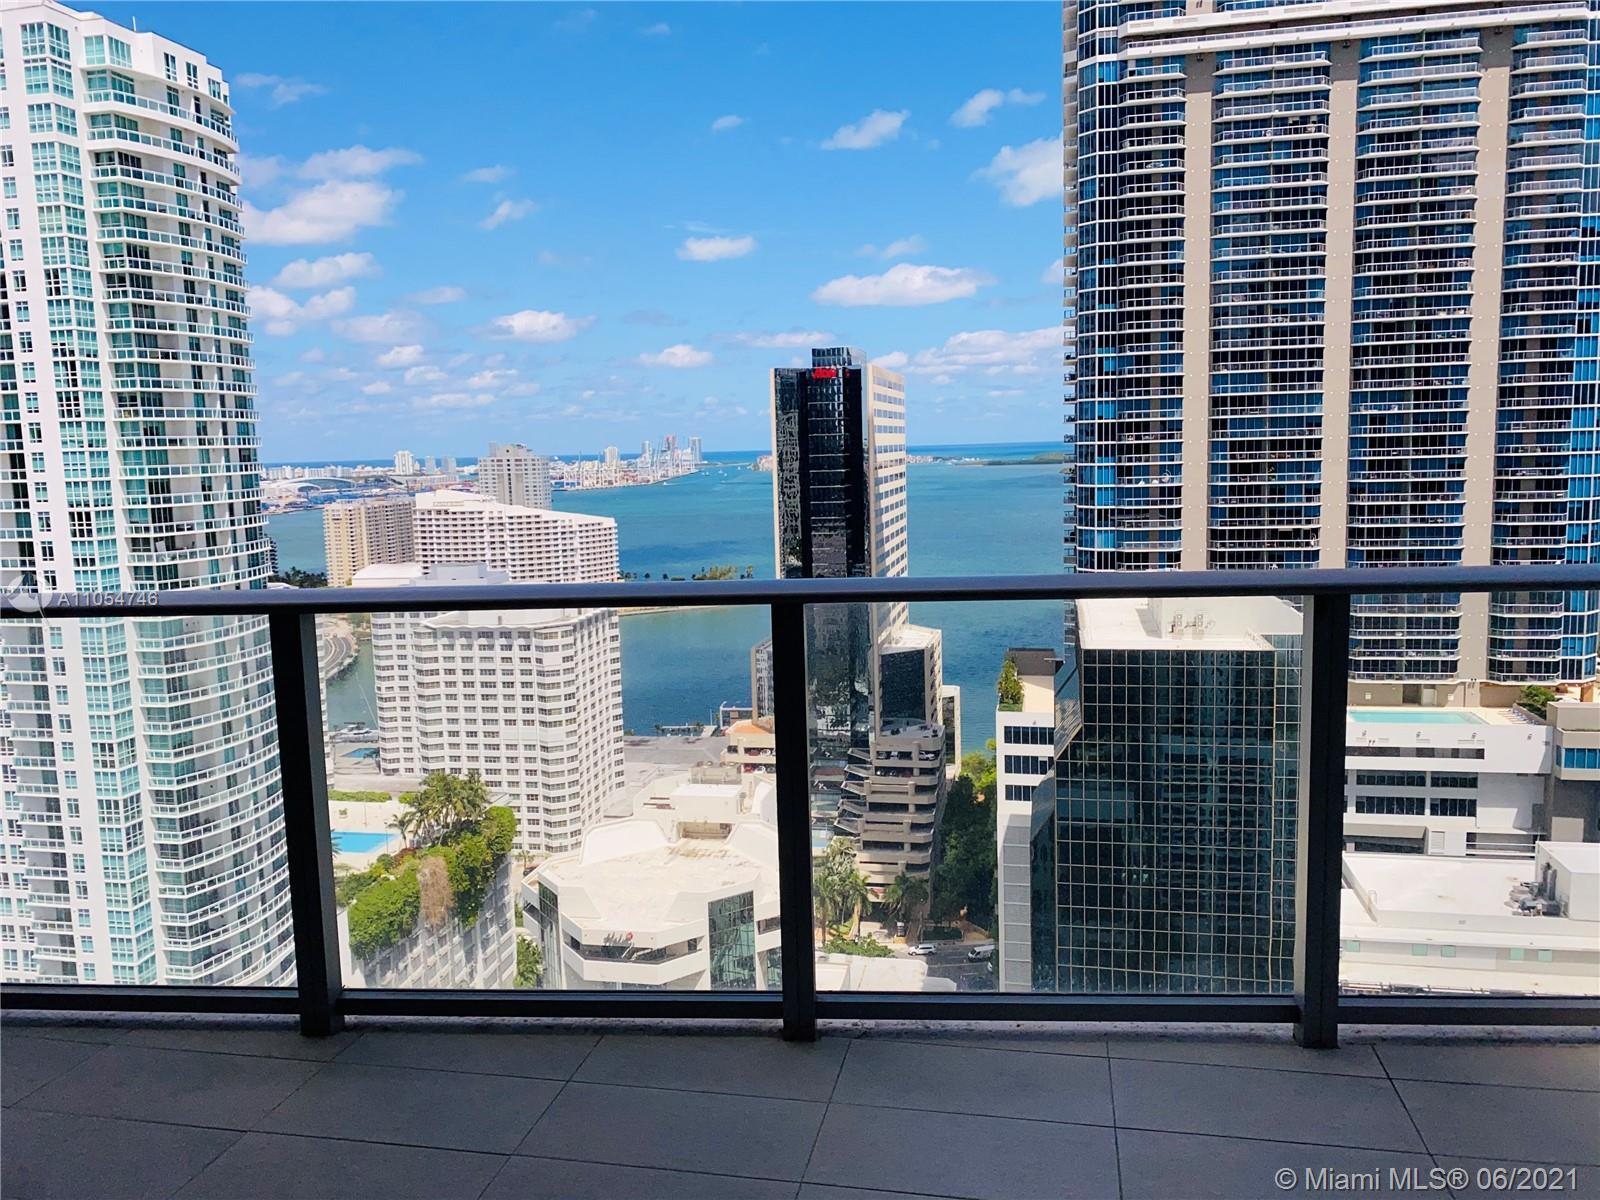 Brickell 1010, the New Luxury Urban Living with spectacular amenities for adults & children! Exquisi